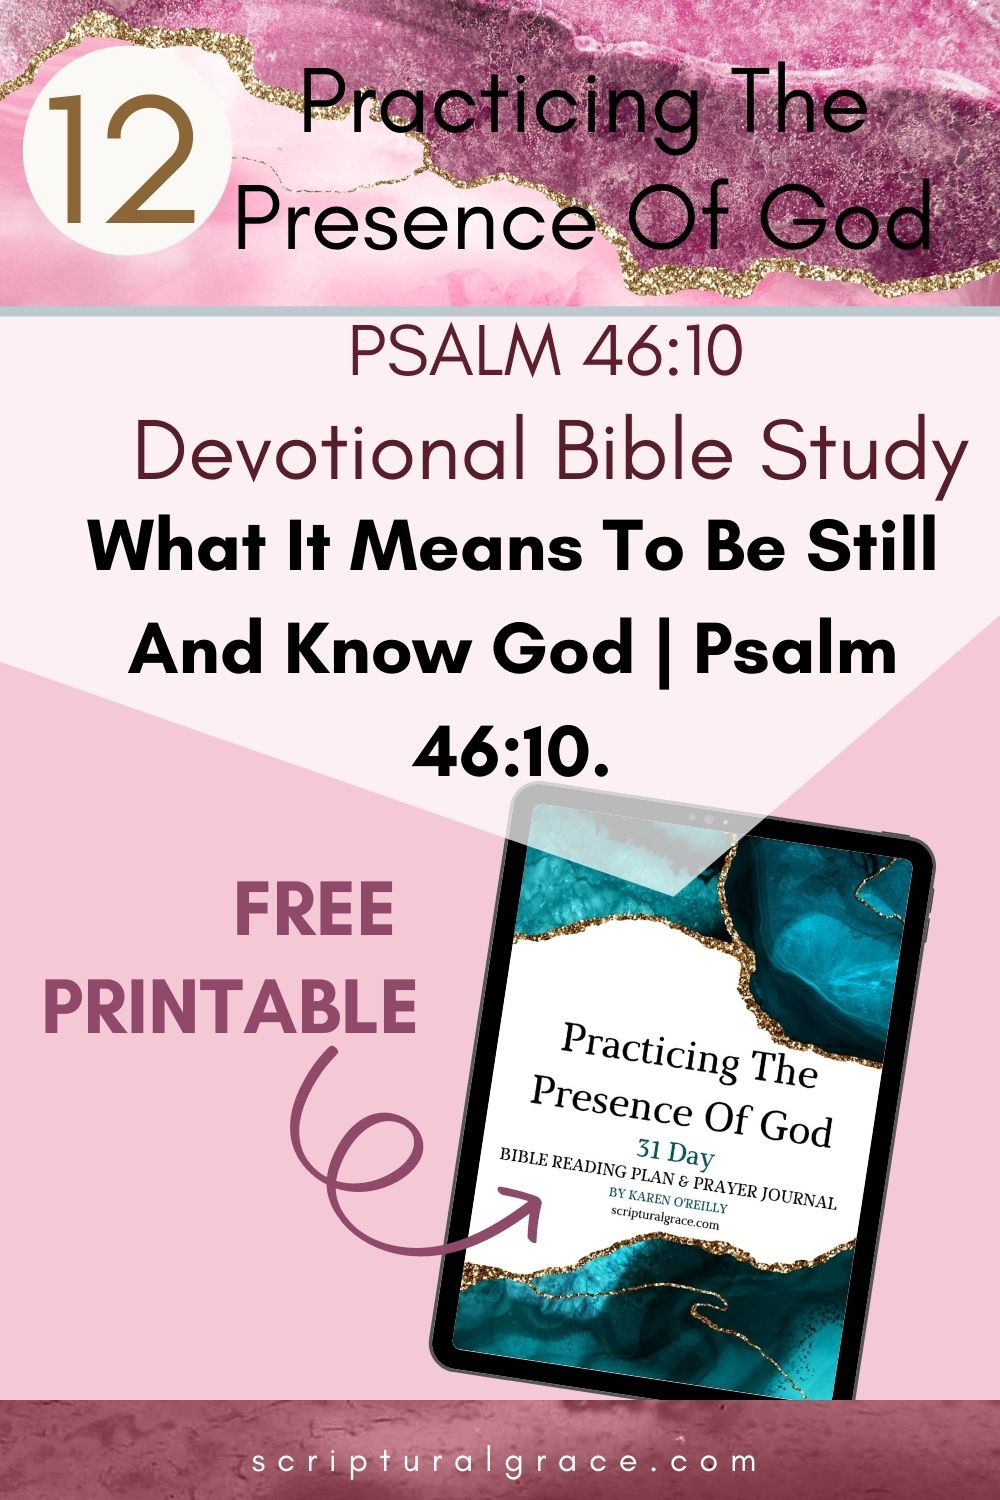 What It Means To Be Still And Know God  Psalm 4610. FREE PRINTABLE